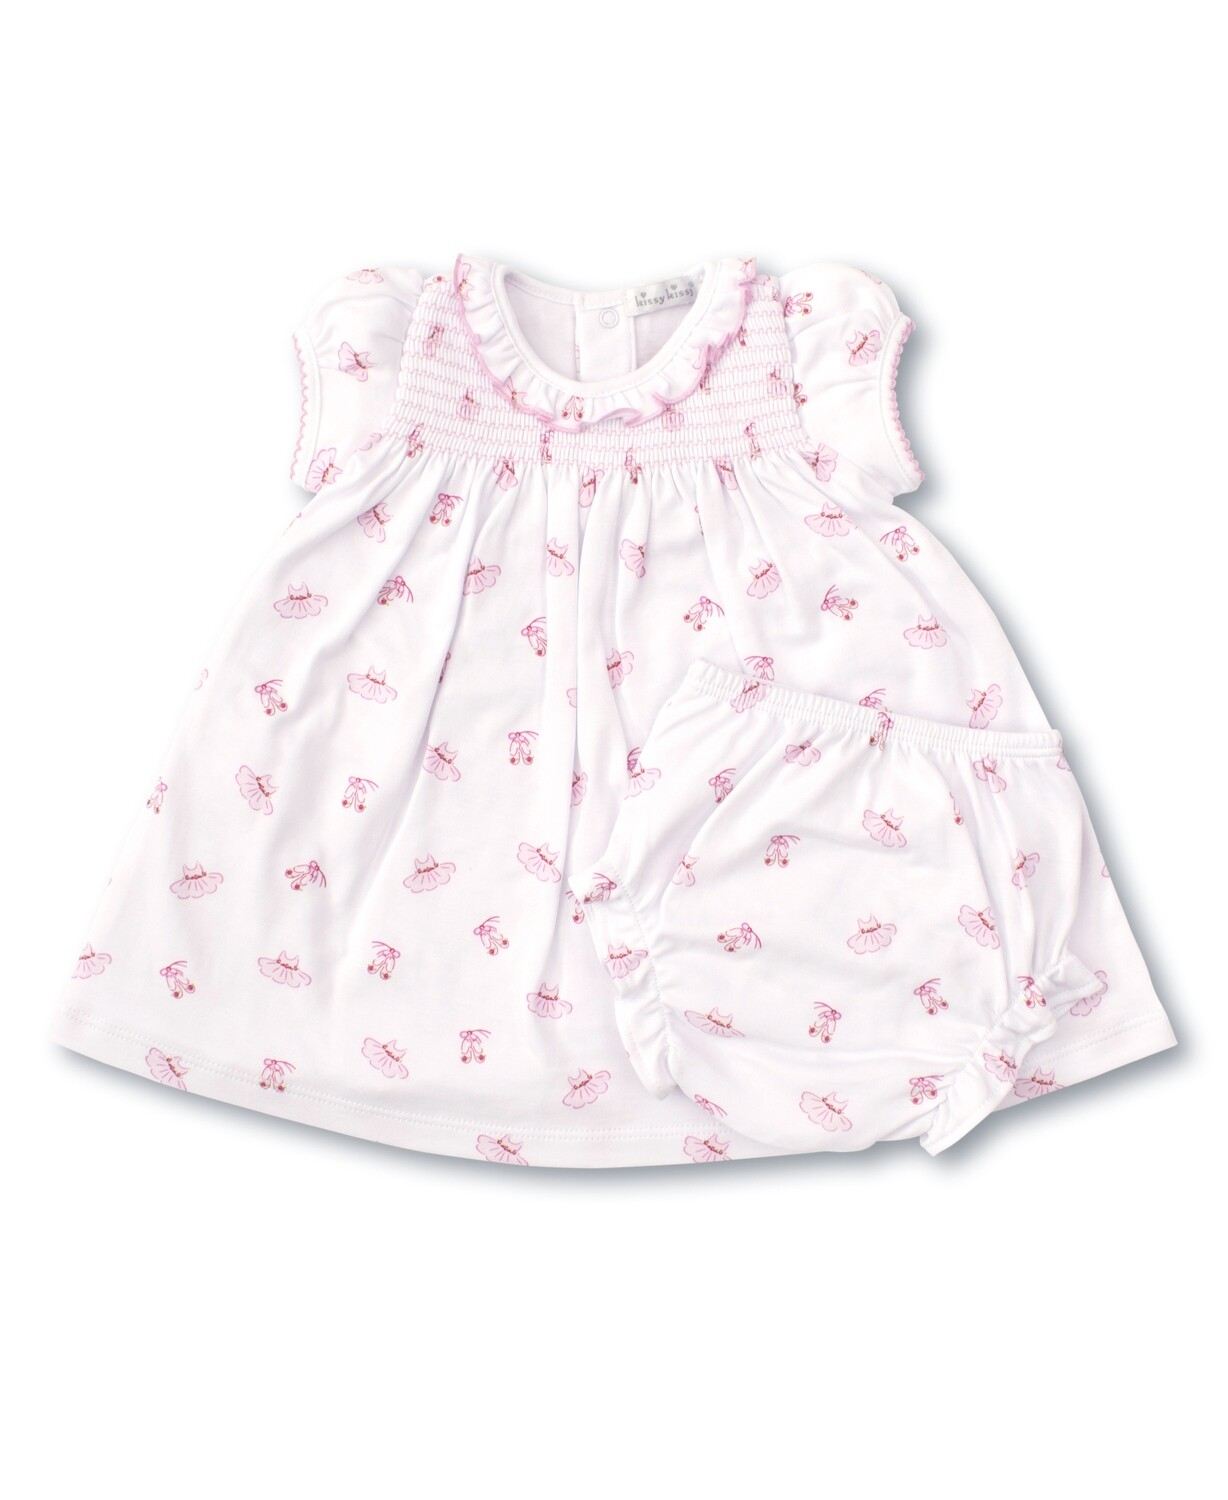 Kissy Kissy Ballet Dress Set